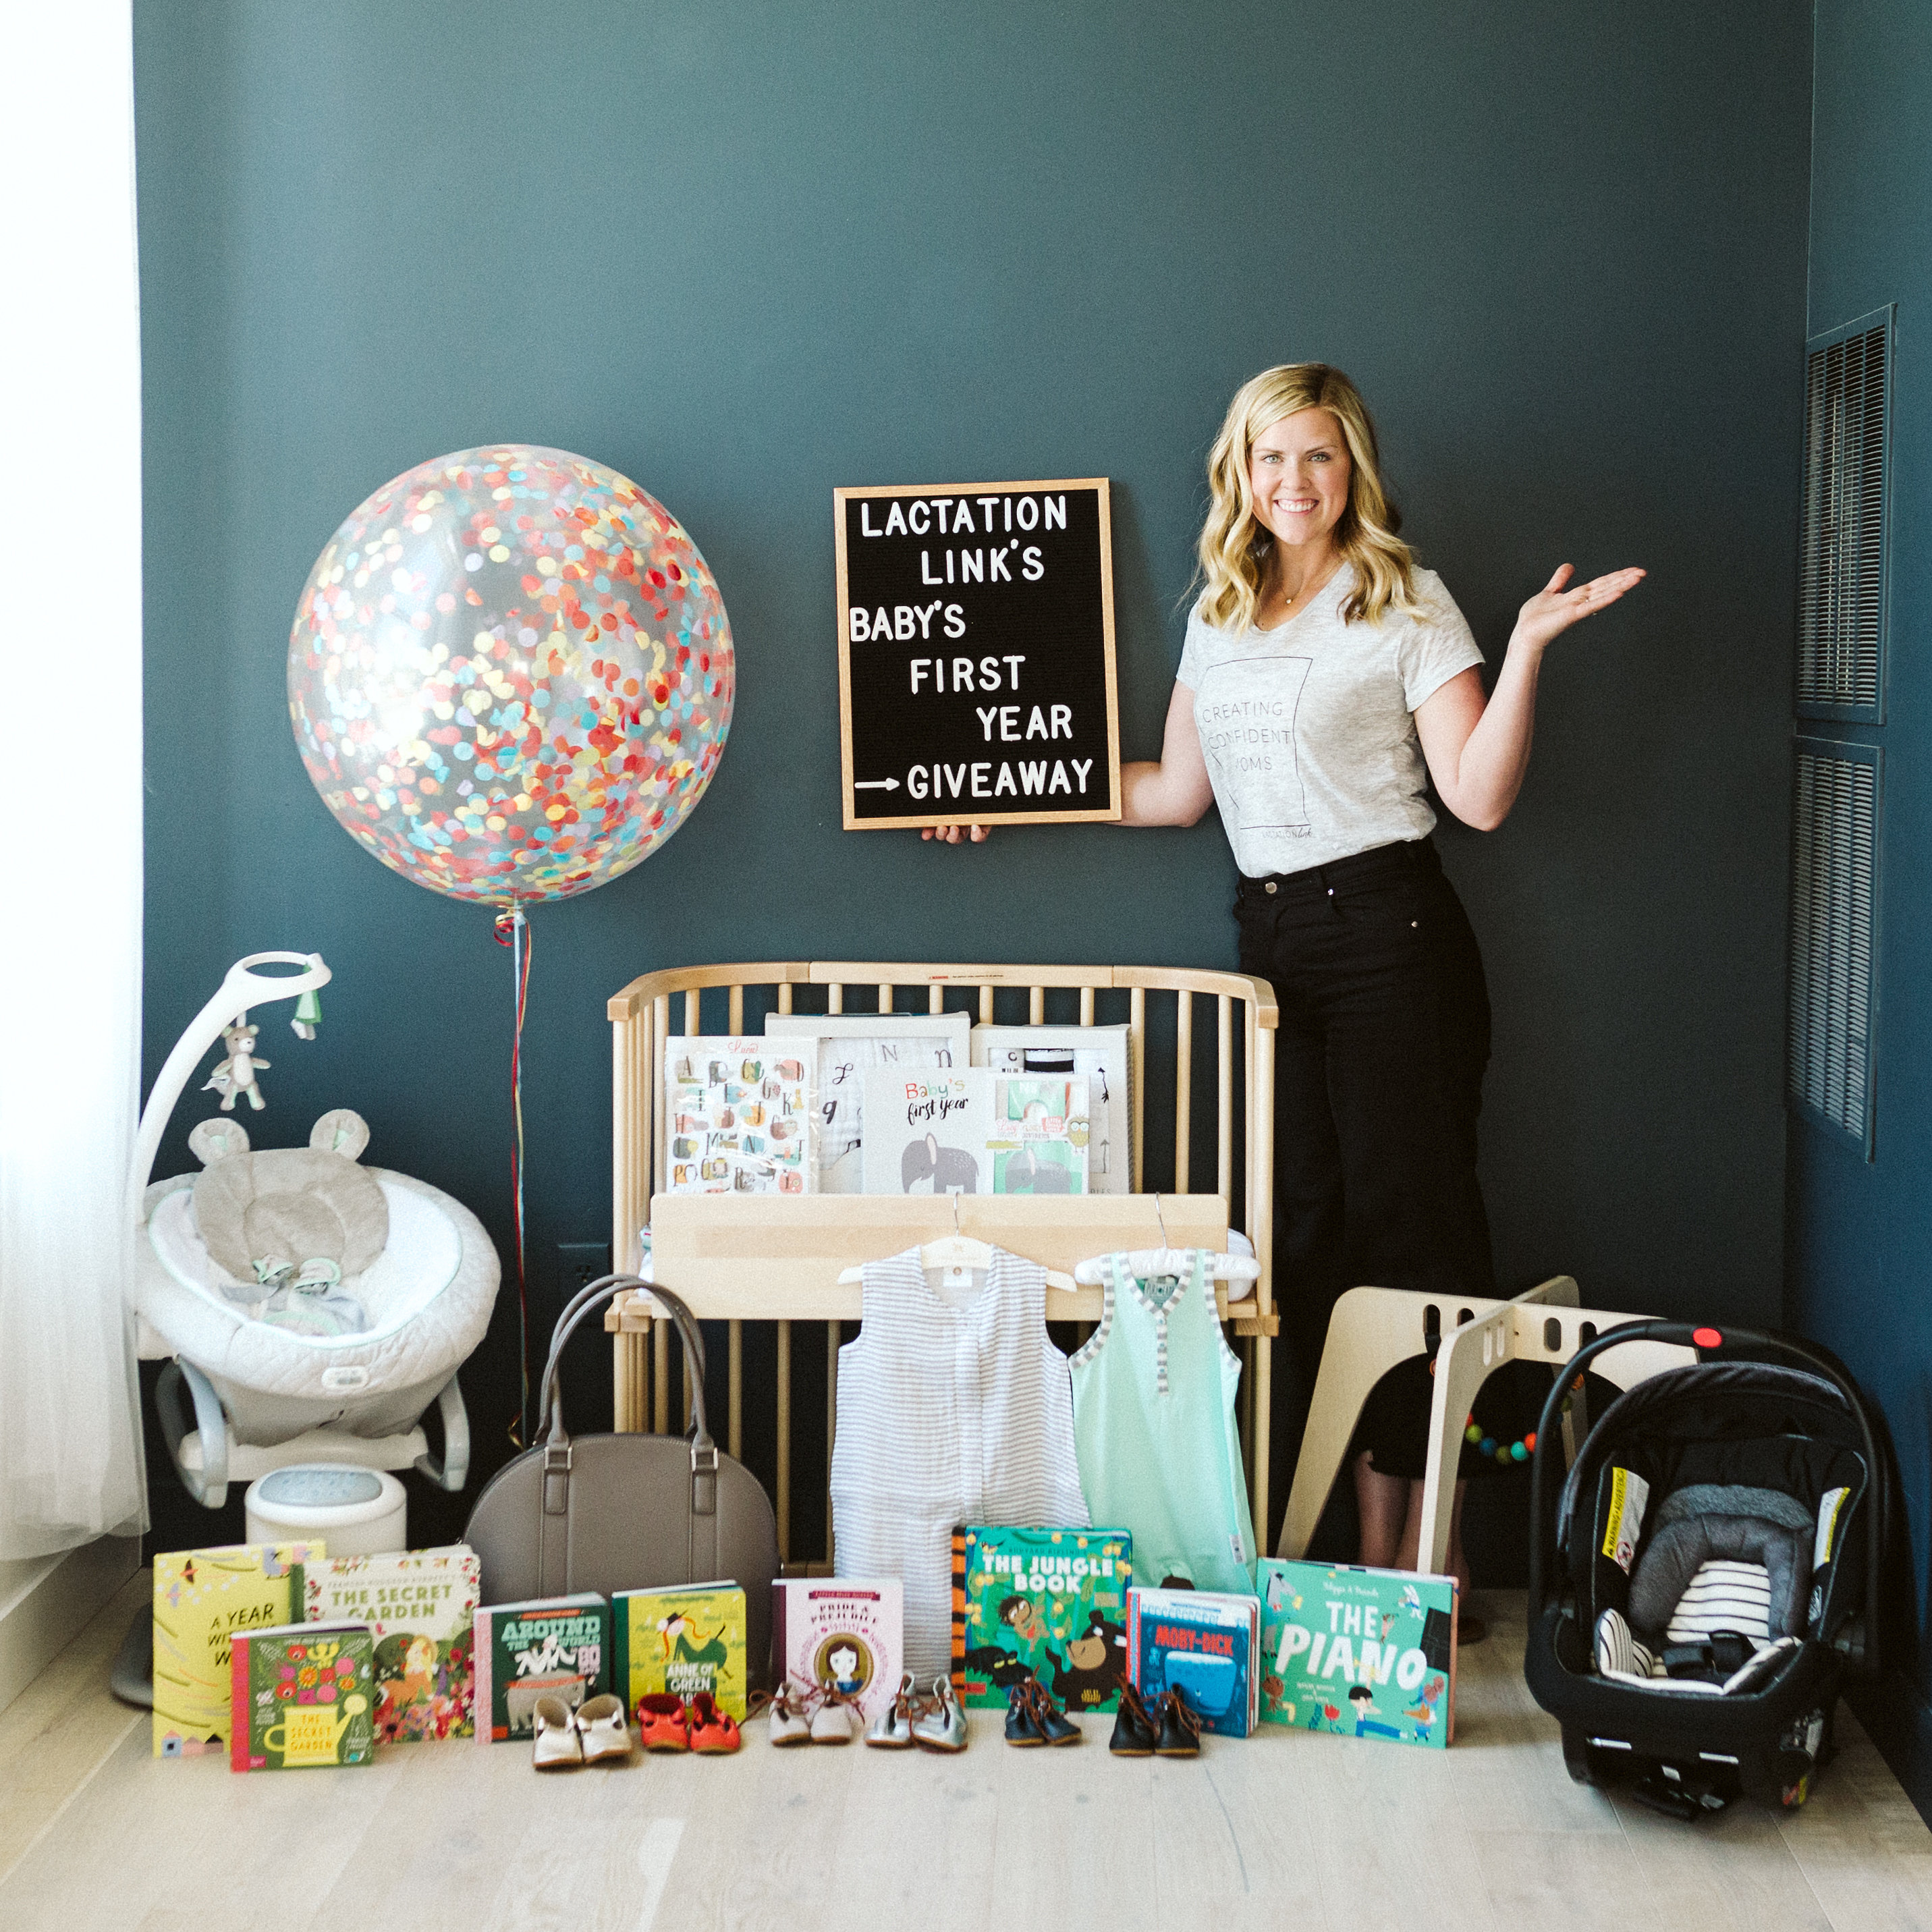 Ultimate Baby's First Year Giveaway! - Lactation Link